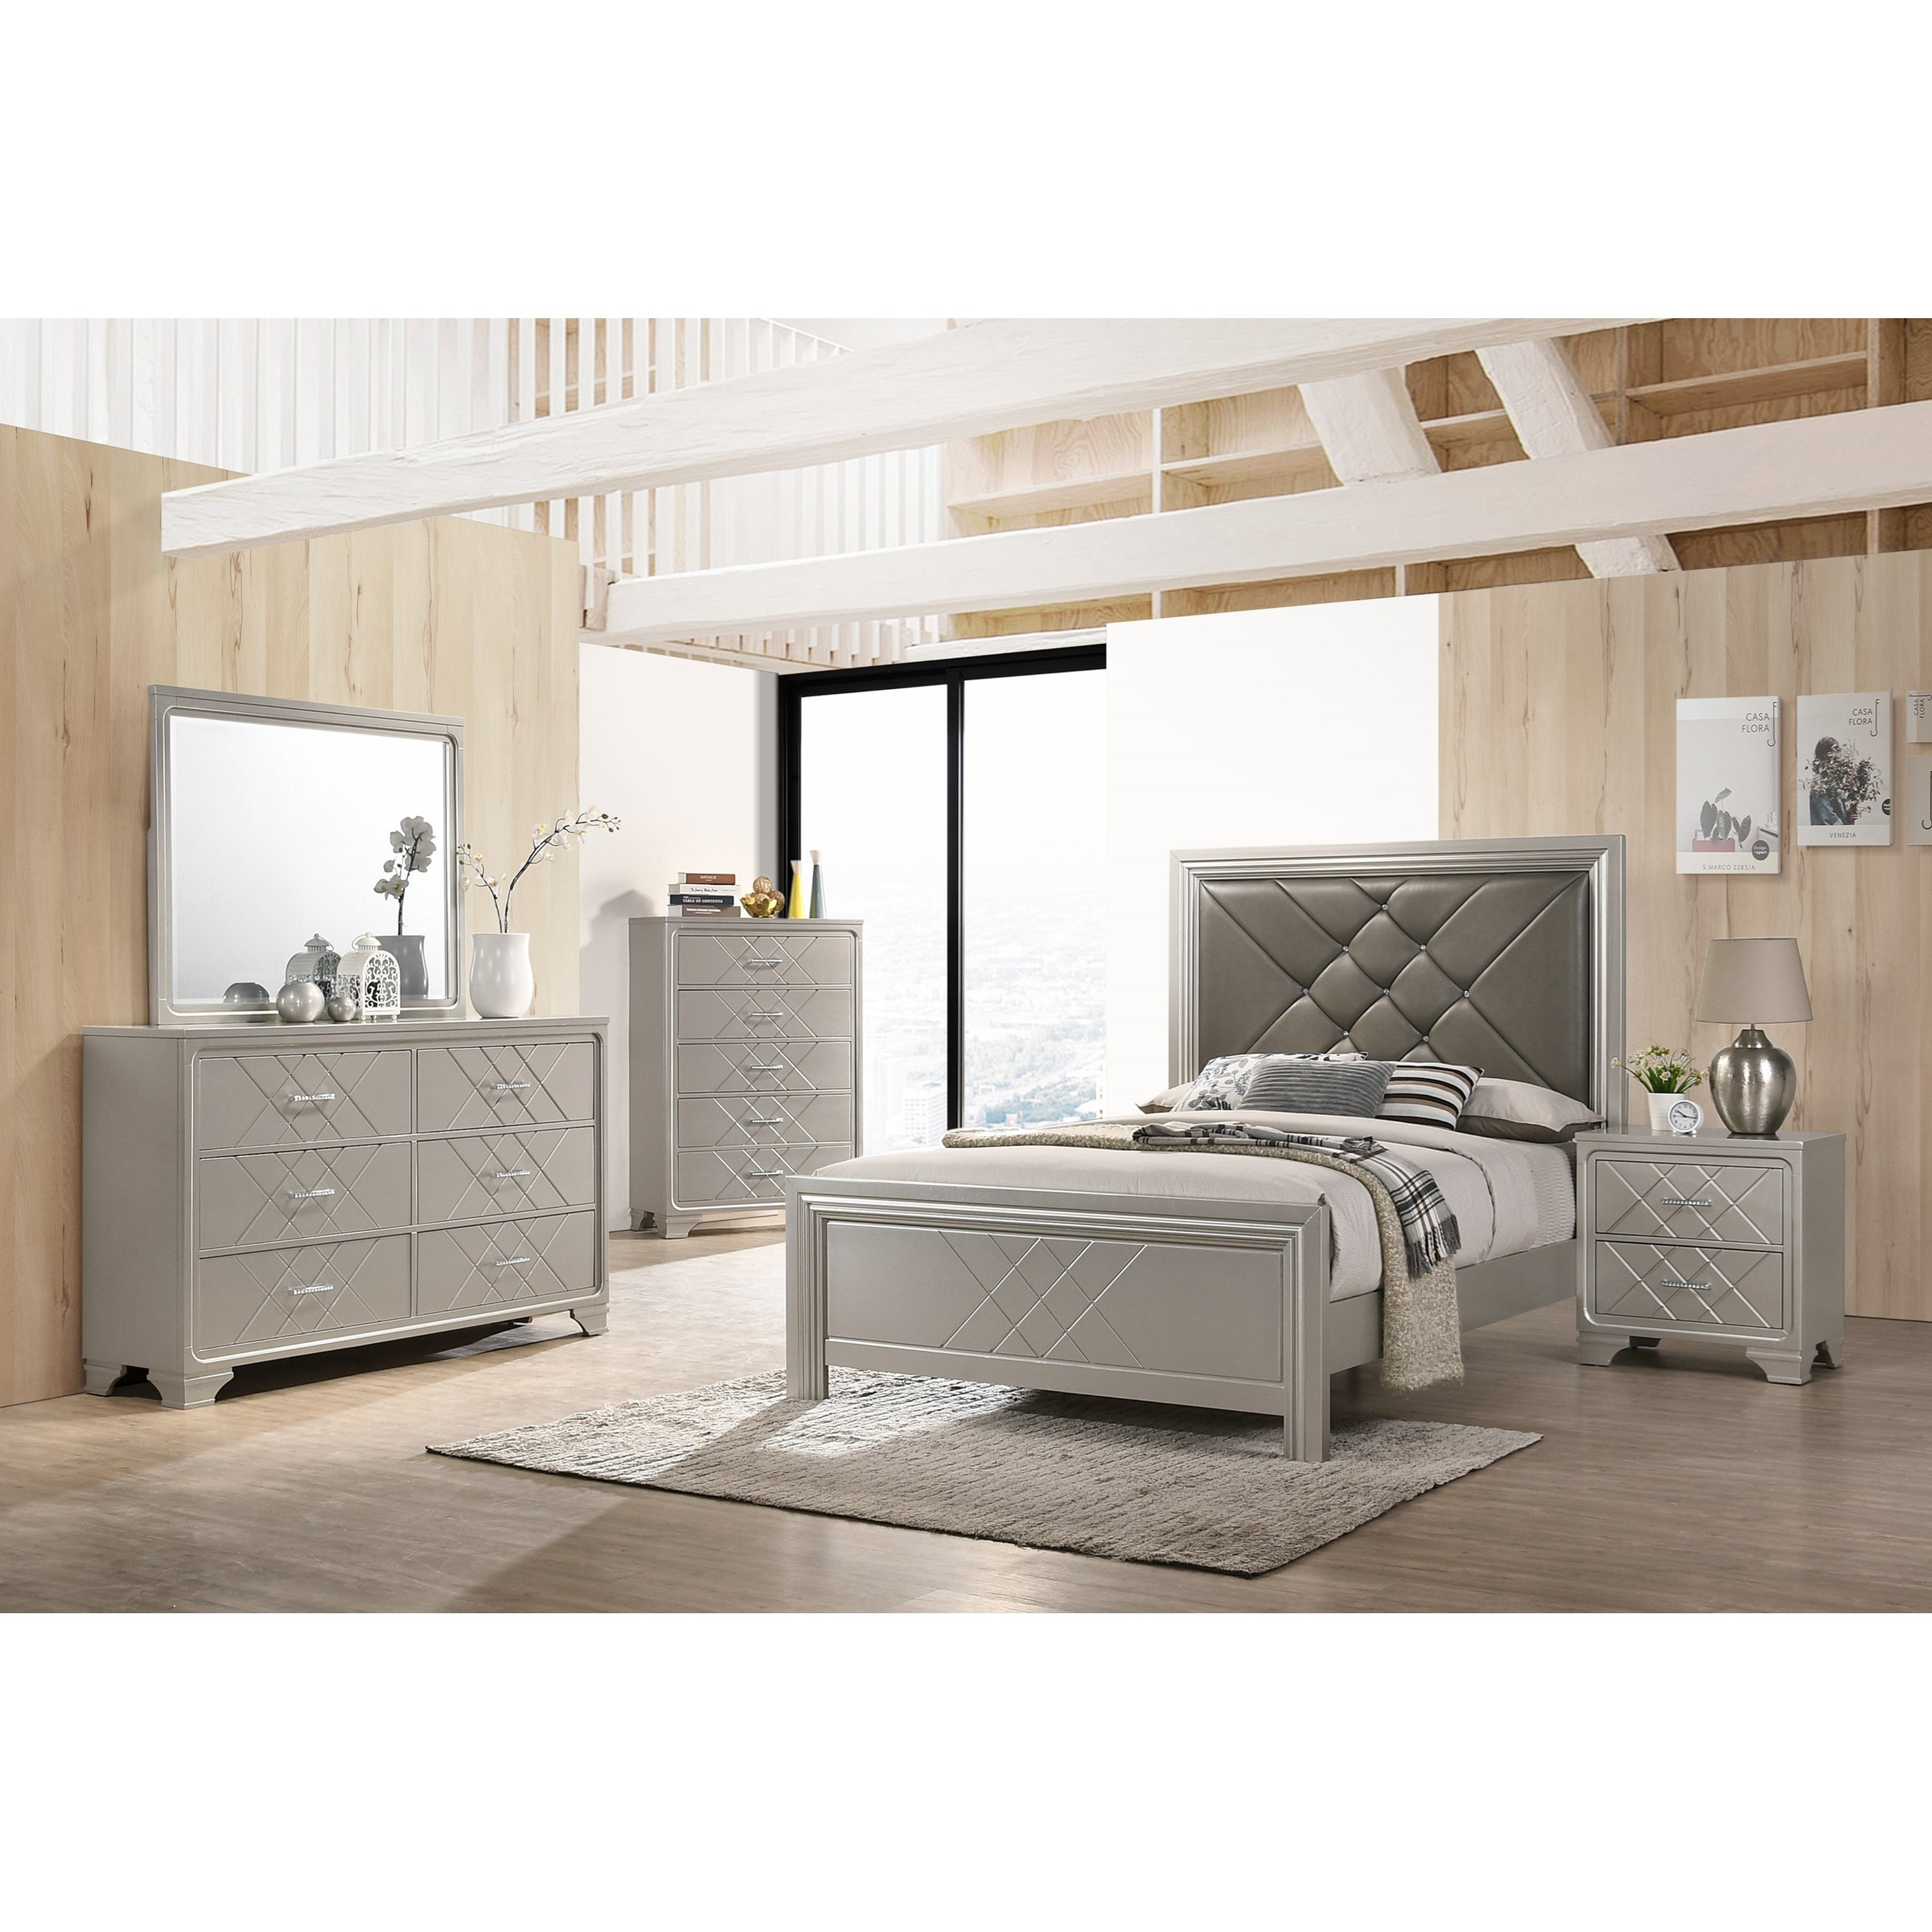 Phoebe California King Bedroom Group by Crown Mark at Northeast Factory Direct